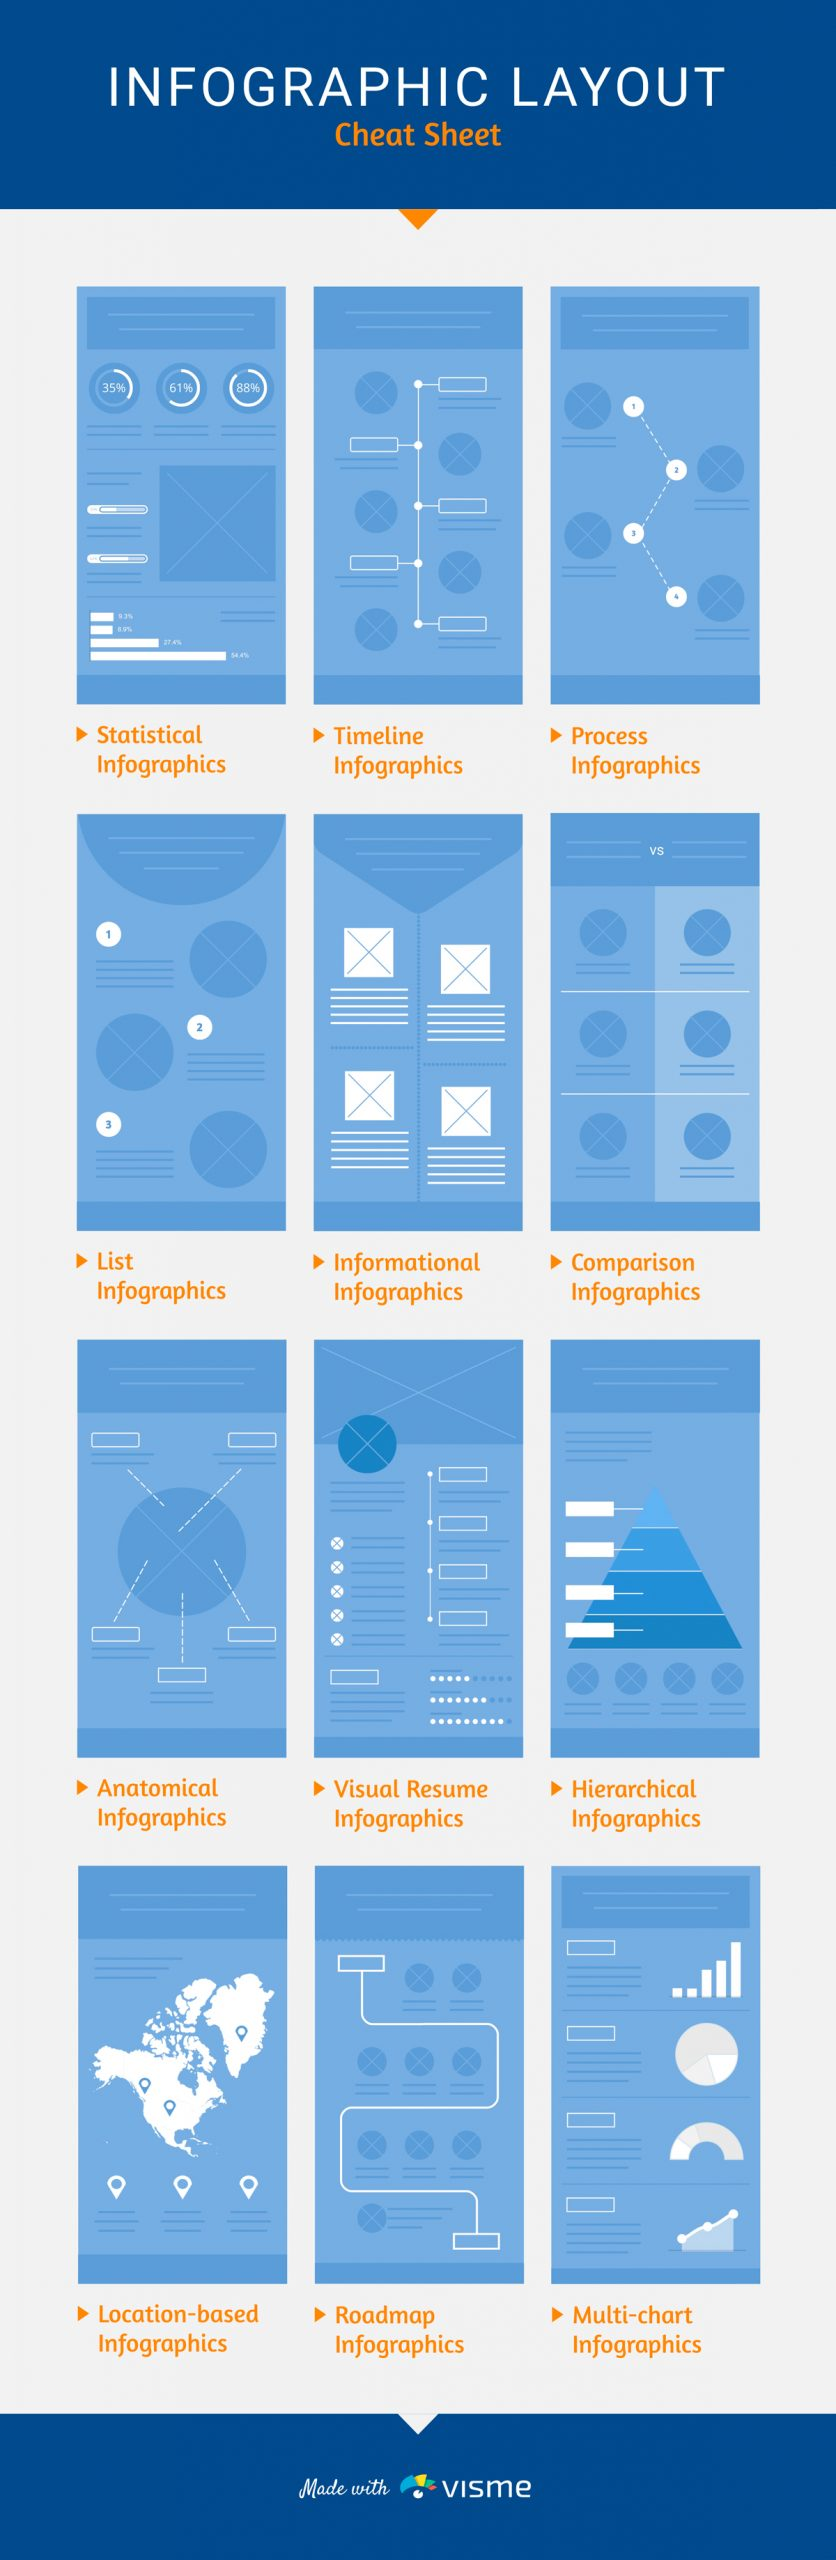 An infographic sharing popular infographic layouts to choose from.